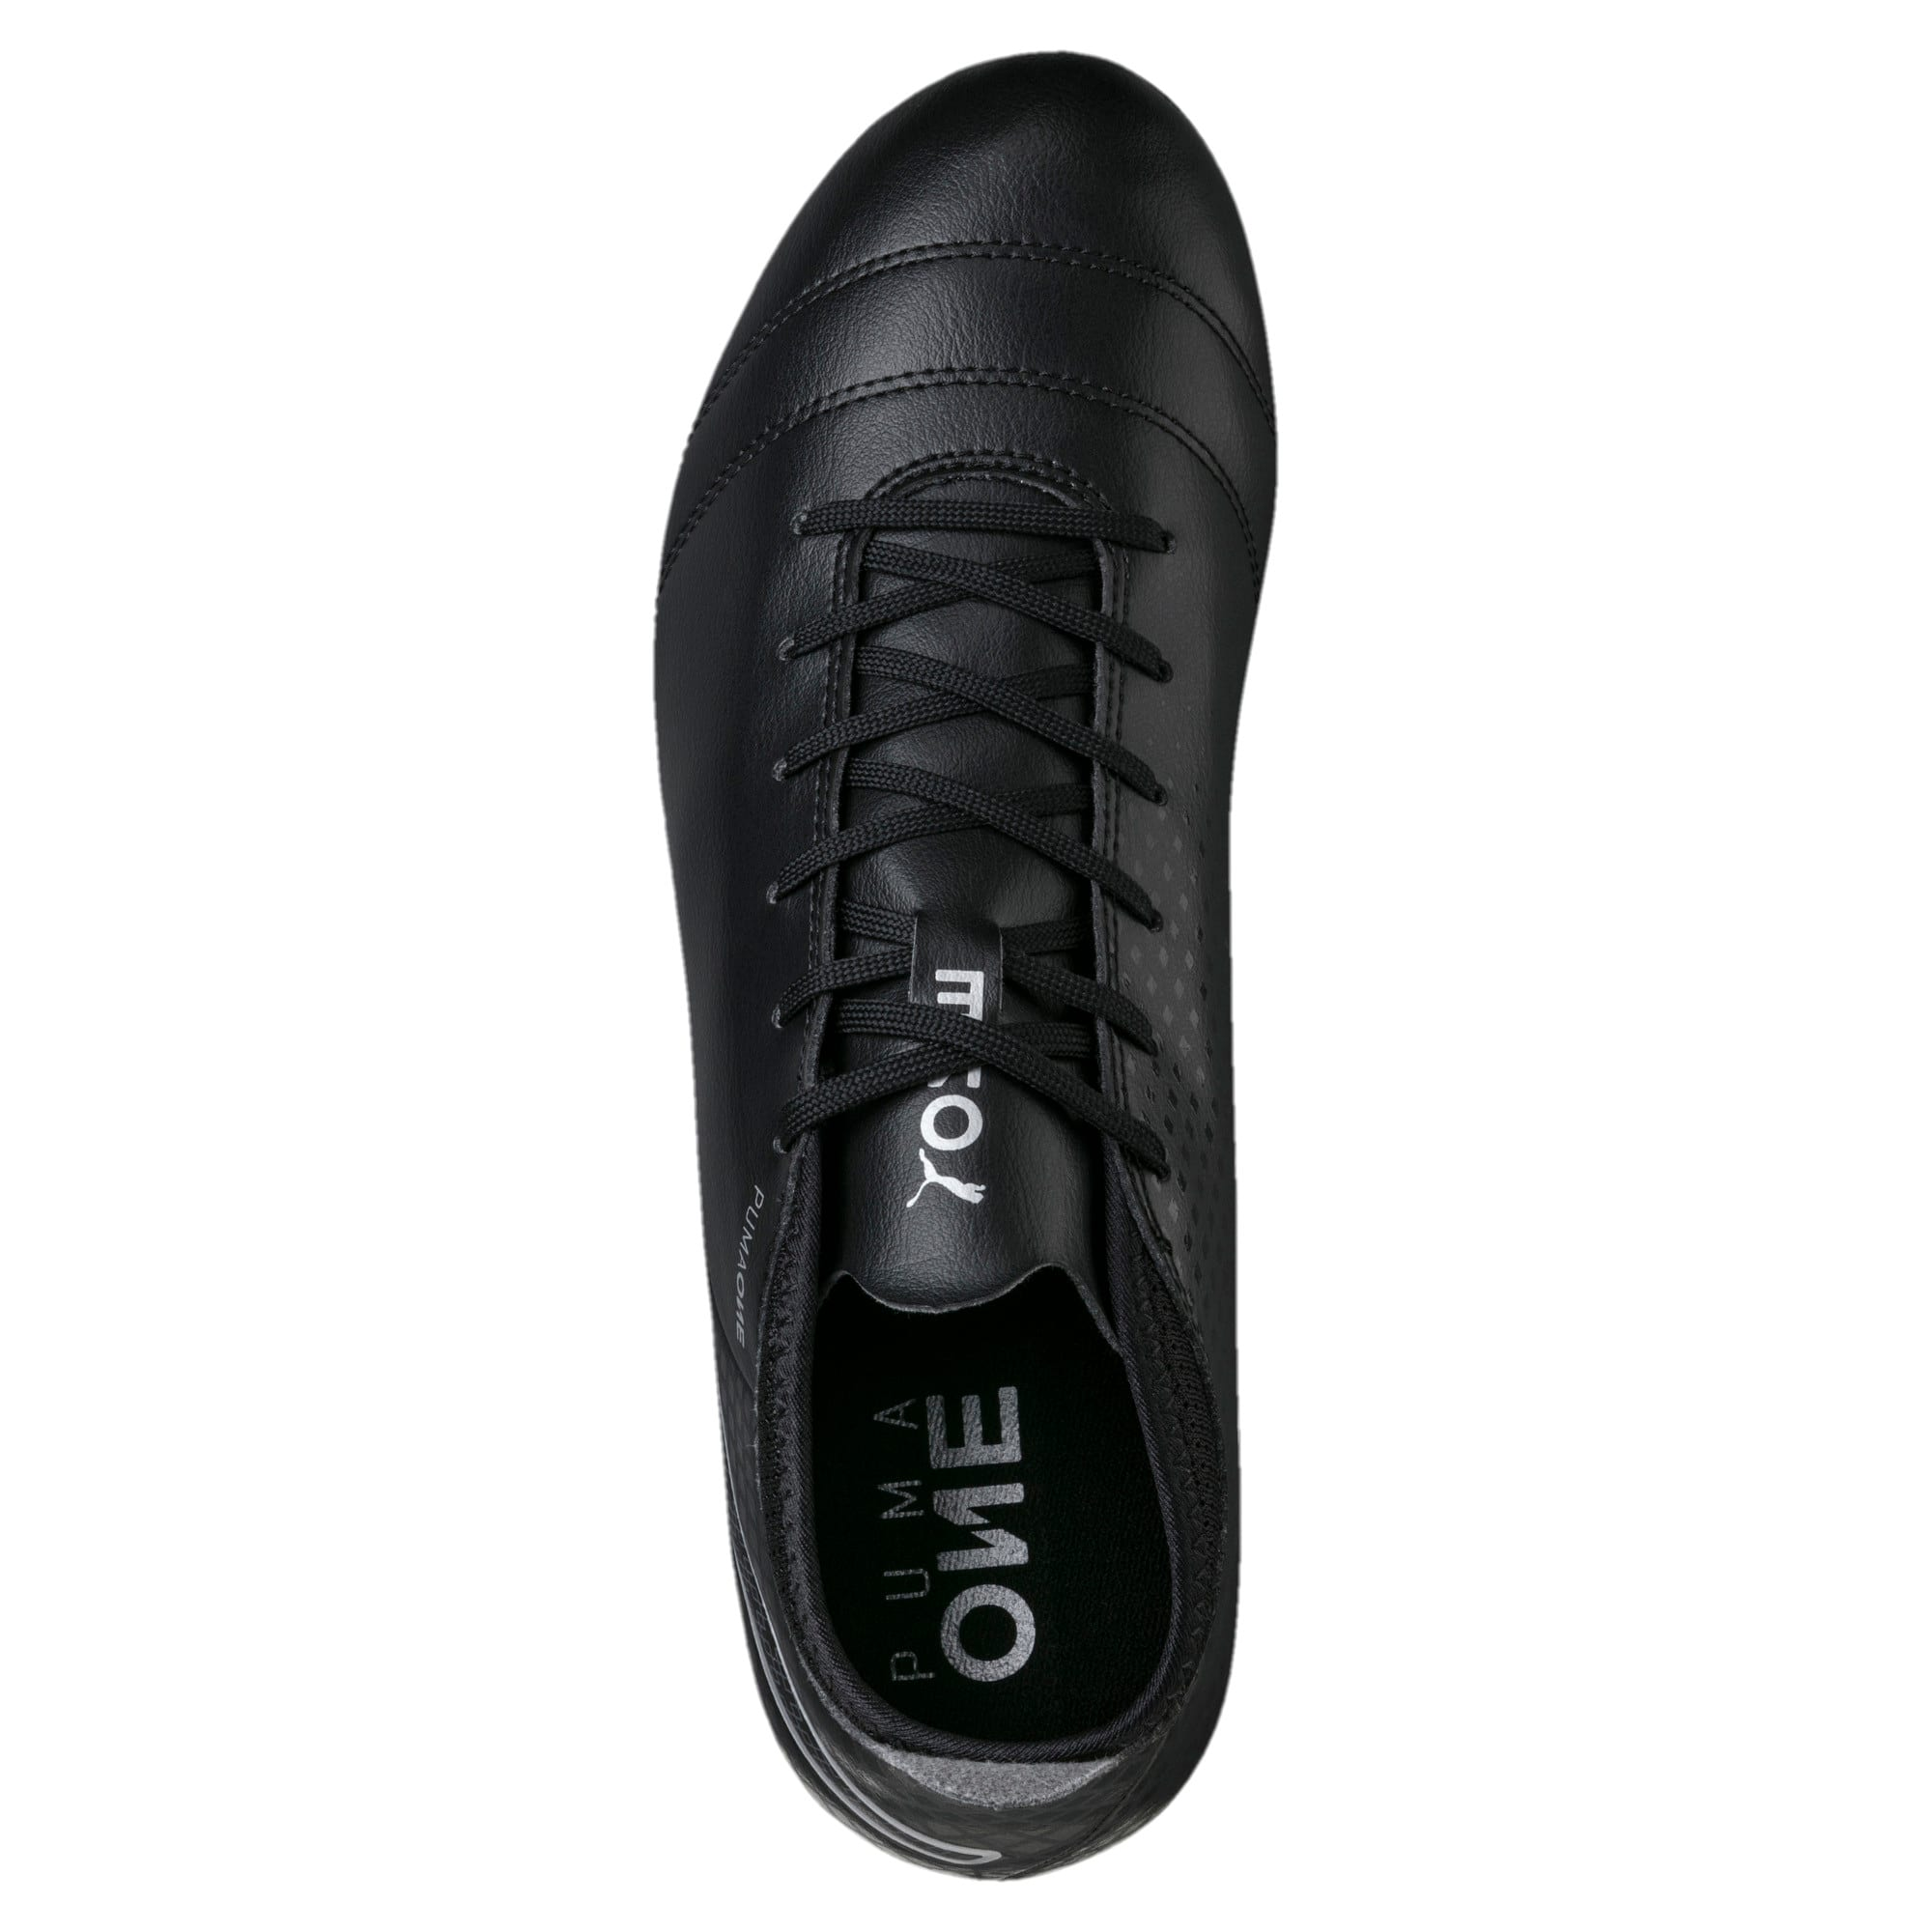 Thumbnail 5 of ONE 17.4 FG Men's Football Boots, Black-Black-Silver, medium-IND